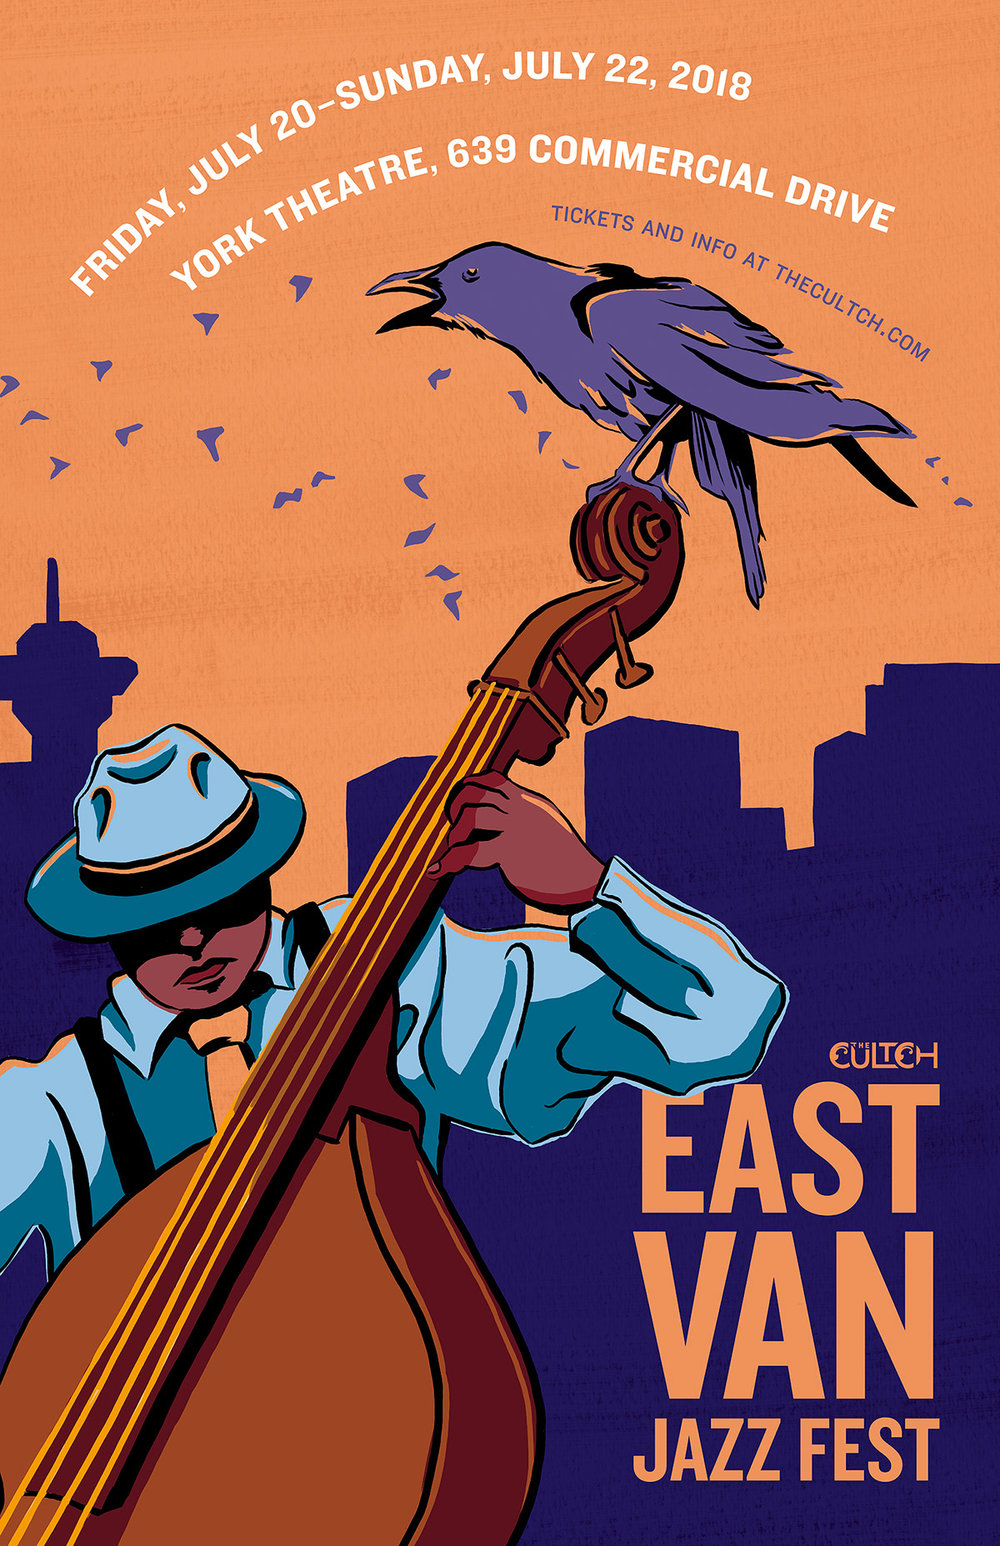 East-Van-Jazz-Festival-poster-illustration-and-design-by-Fiona-Dunnett.jpg